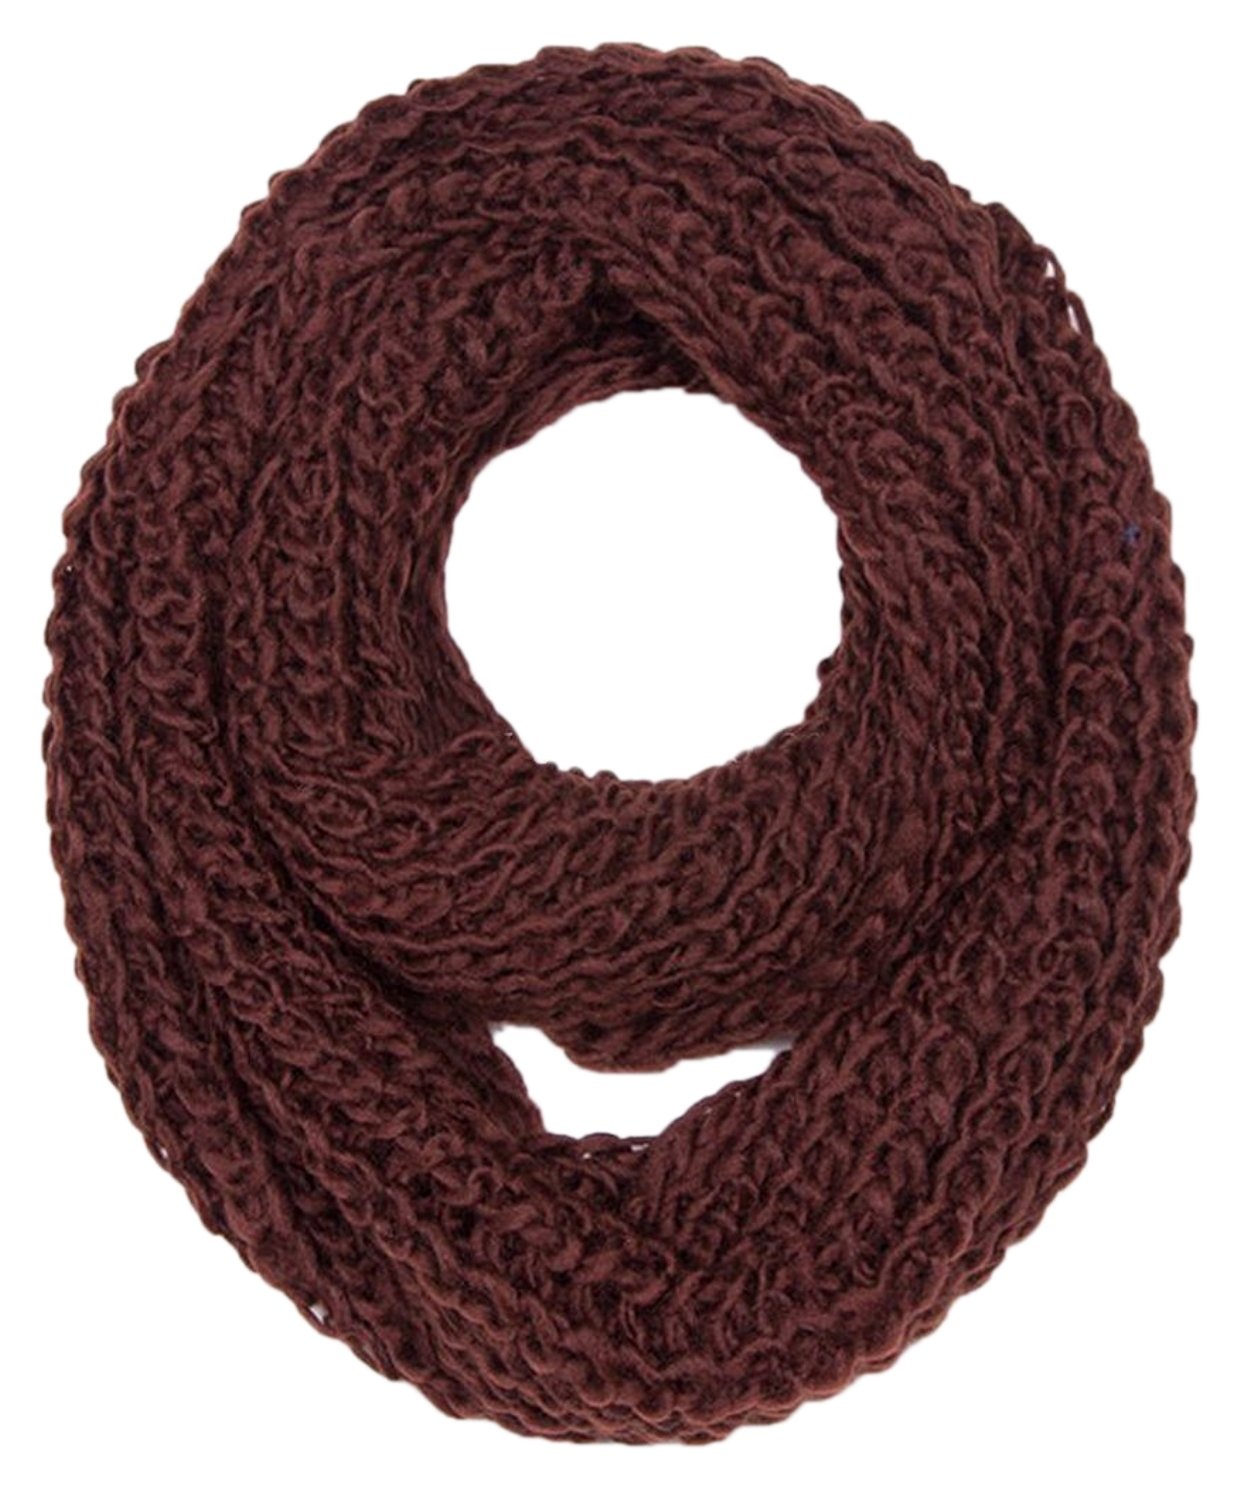 A3153-Chunky-Loop-Brown-JG